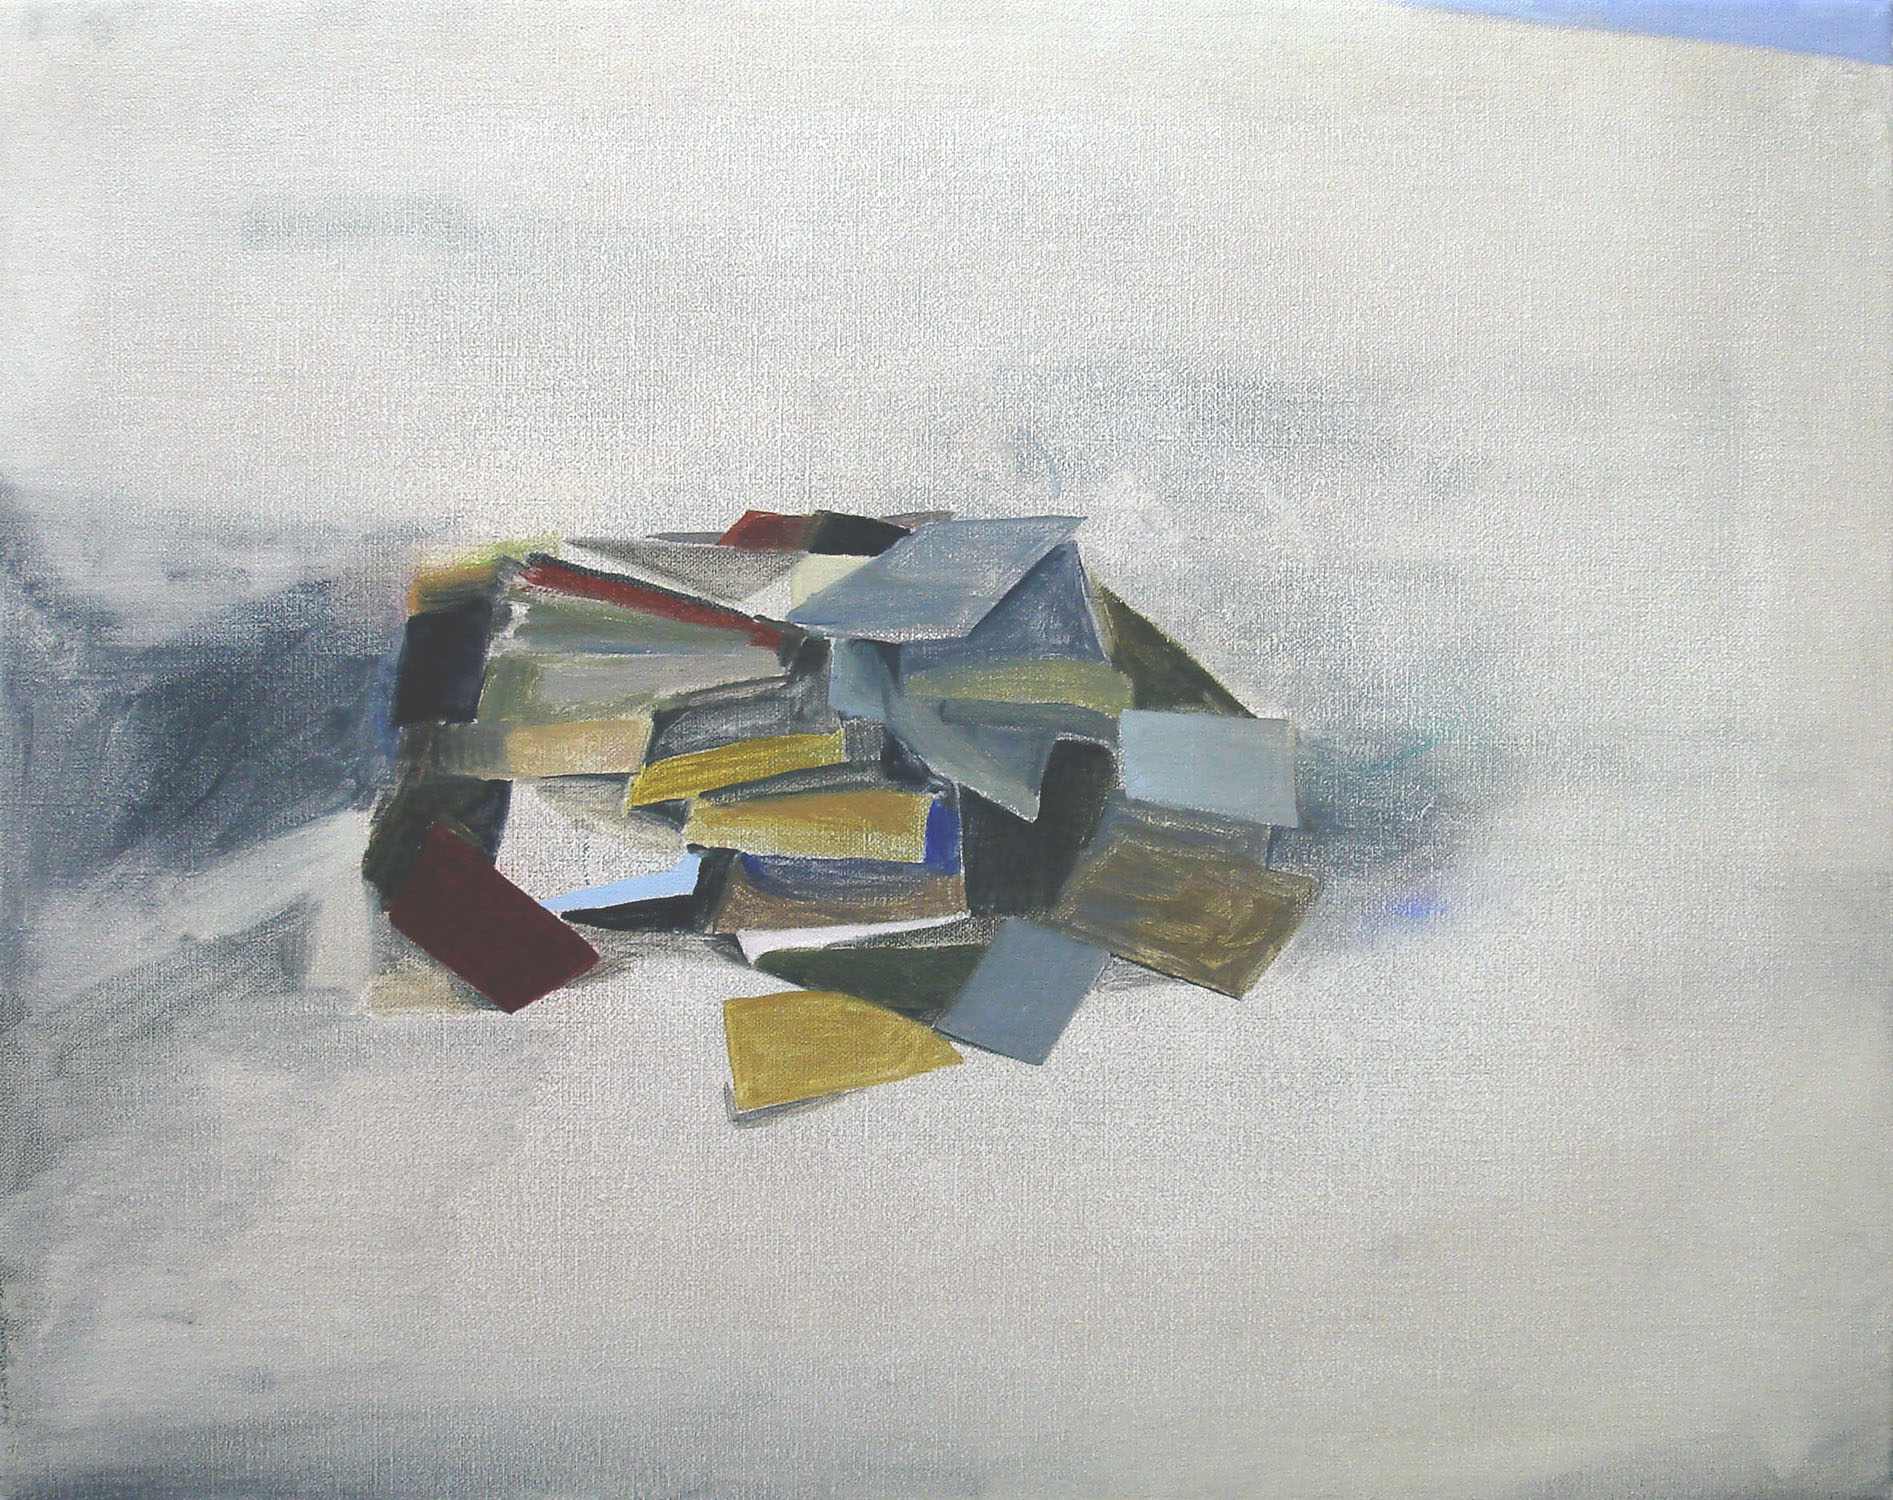 Books    2010, oil on canvas, 40 x 50cm